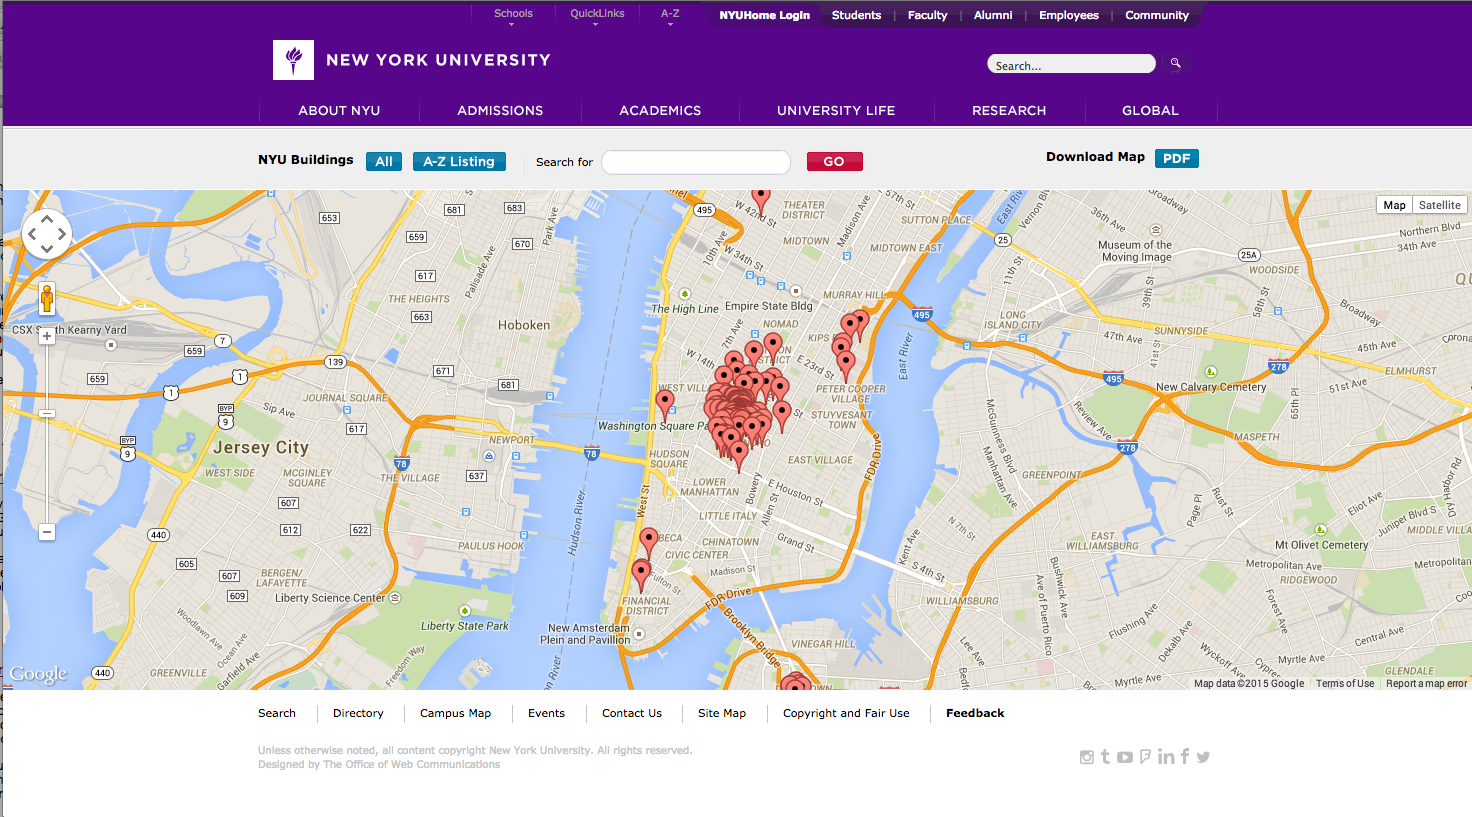 New York University interactive map